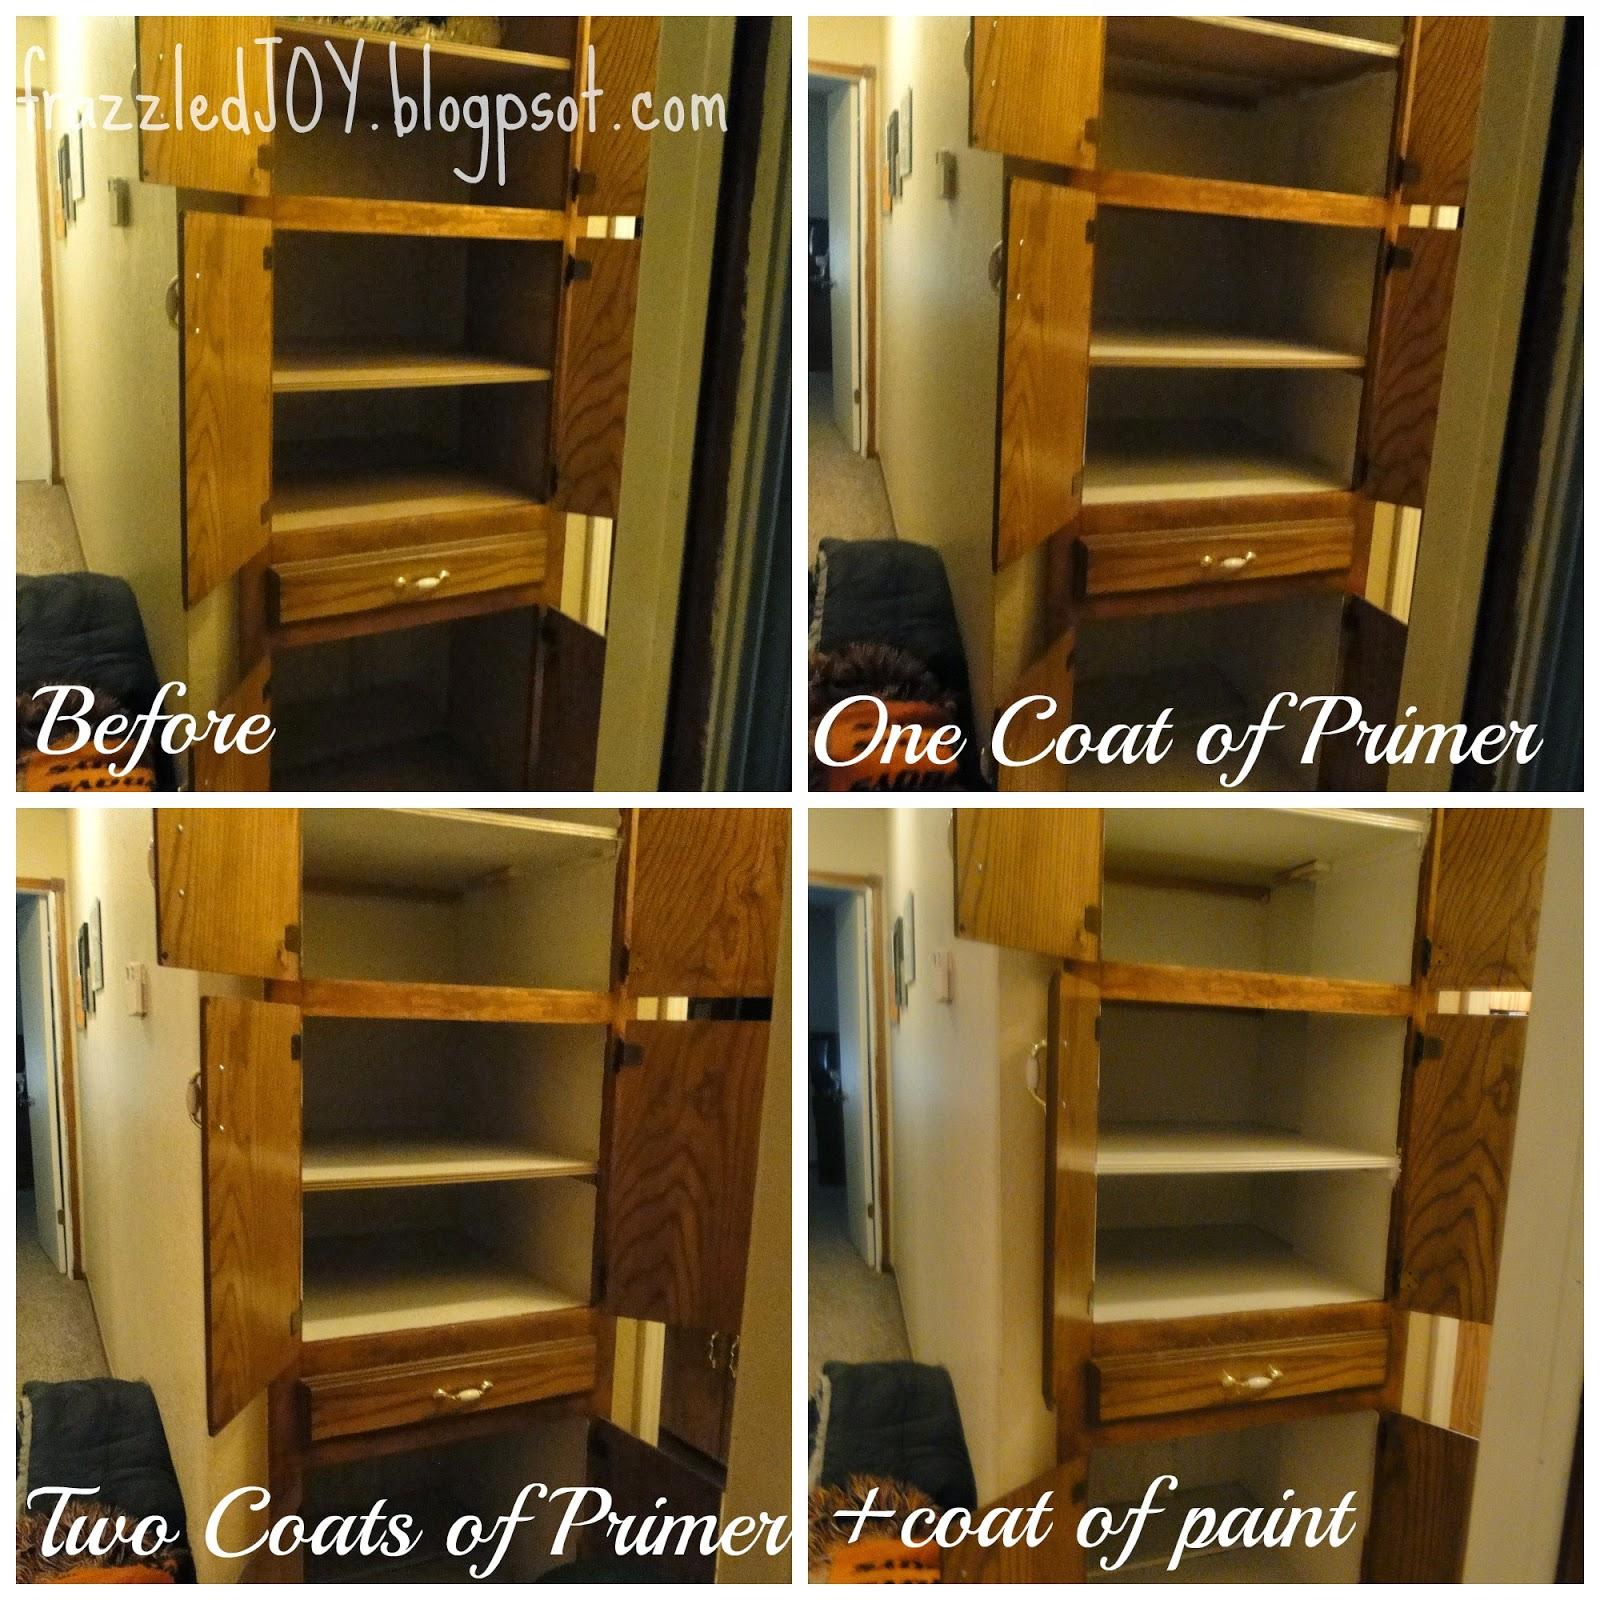 Use white paint on the inside of cabinets to make the space brighter.